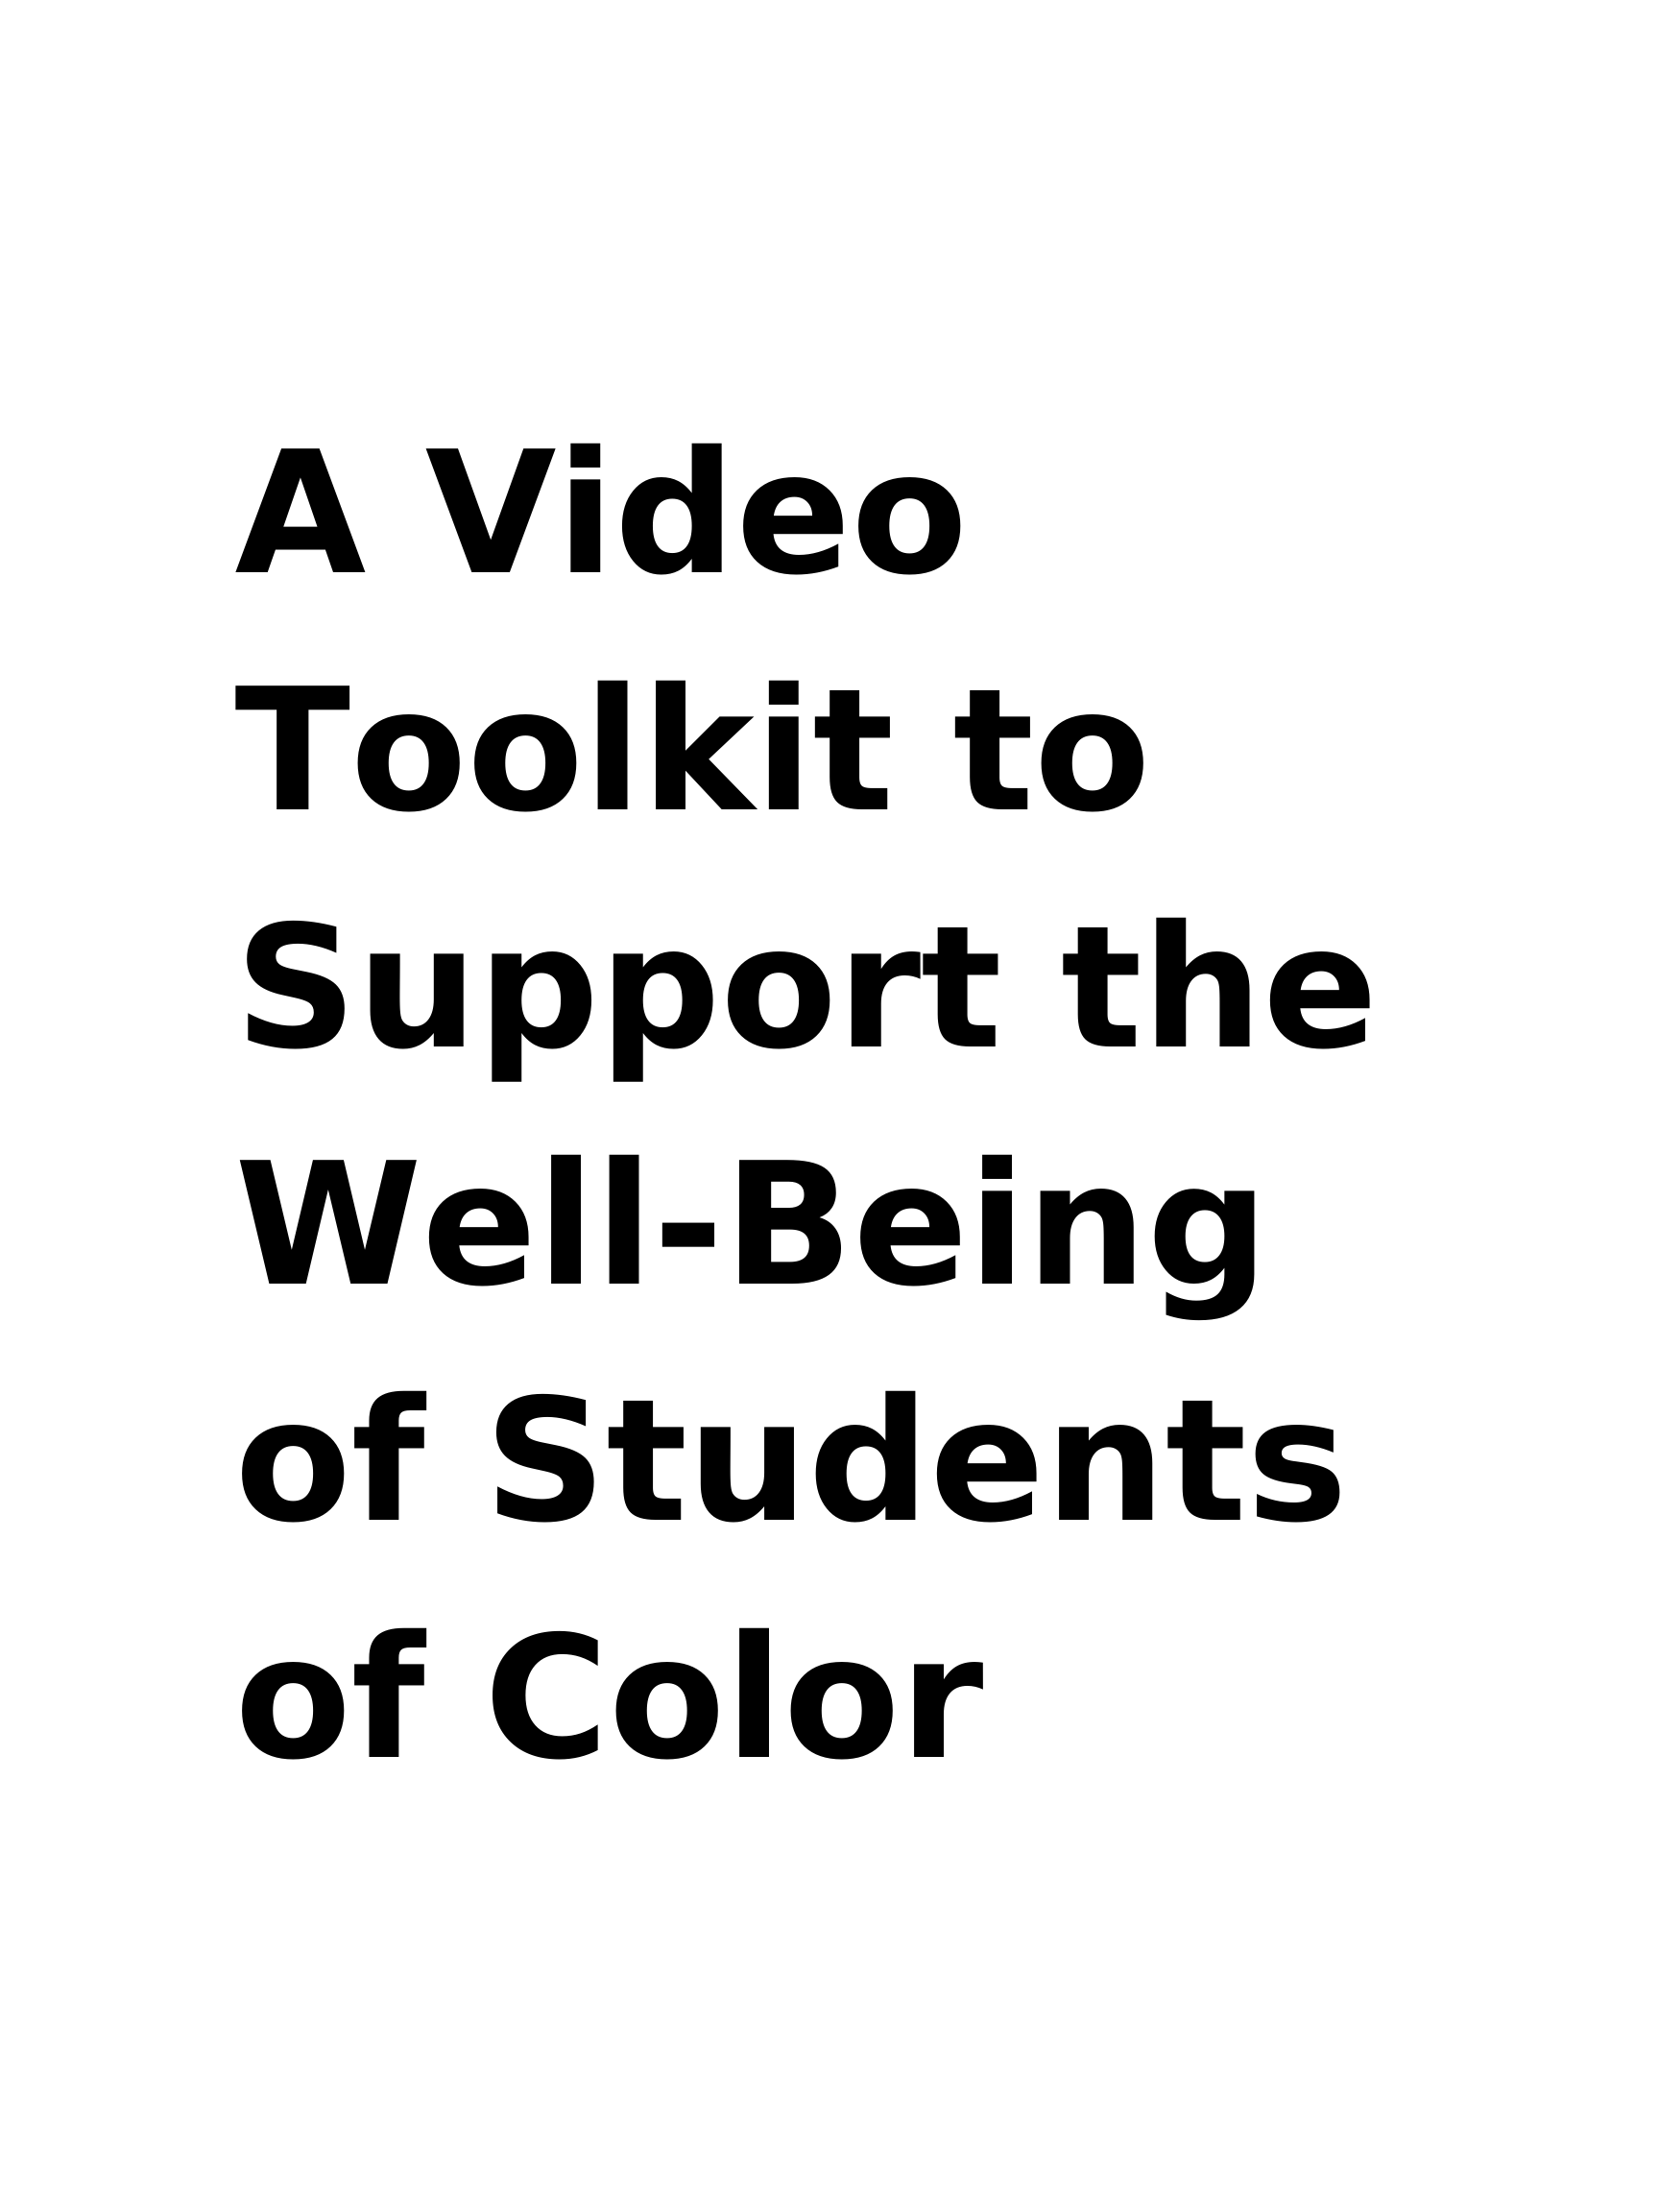 A Video Toolkit to Support the Well-Being of Students of Color